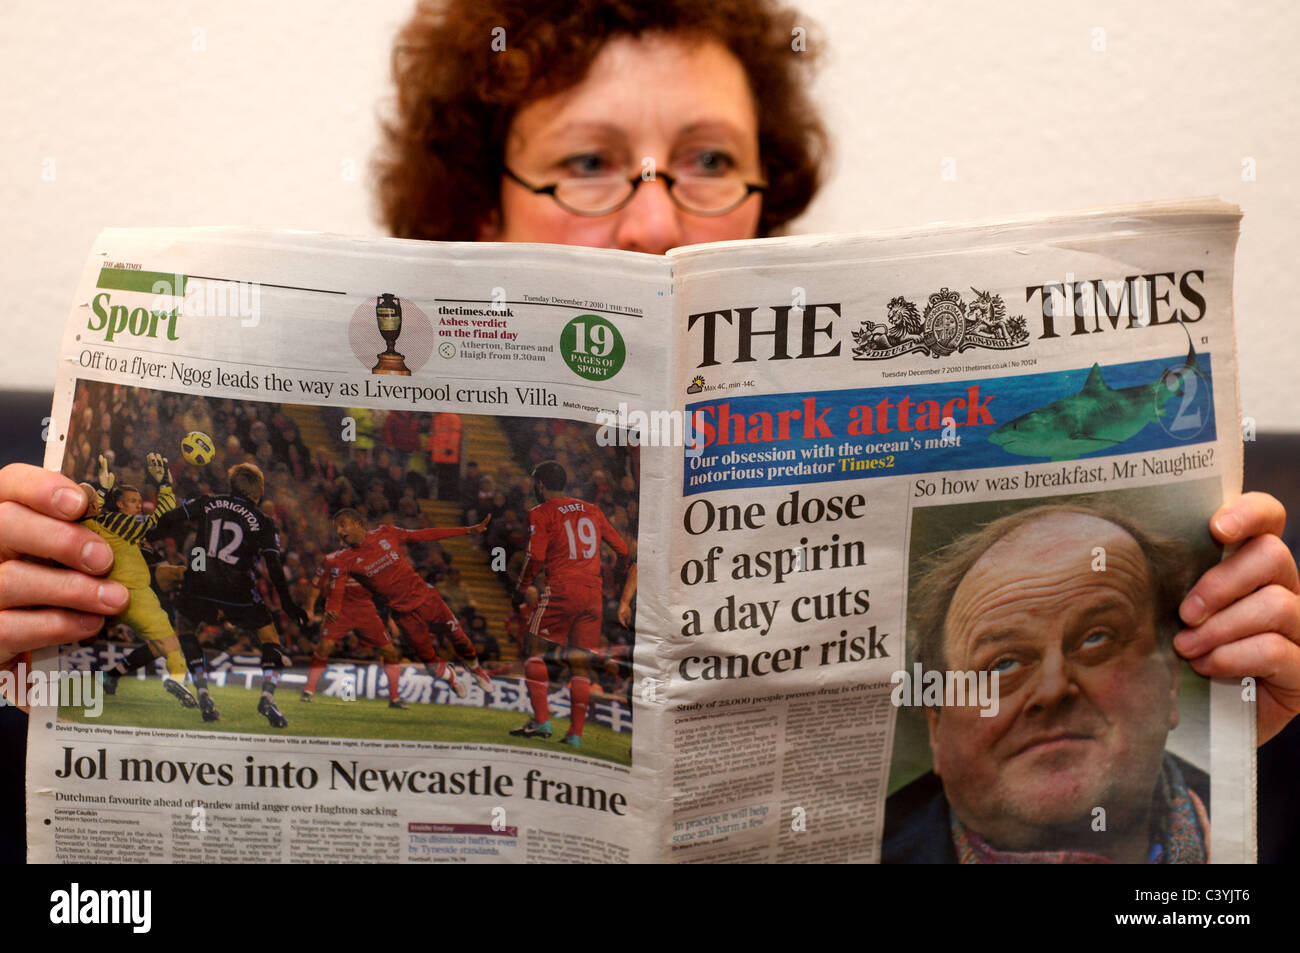 Woman reading The Times newspaper - Stock Image